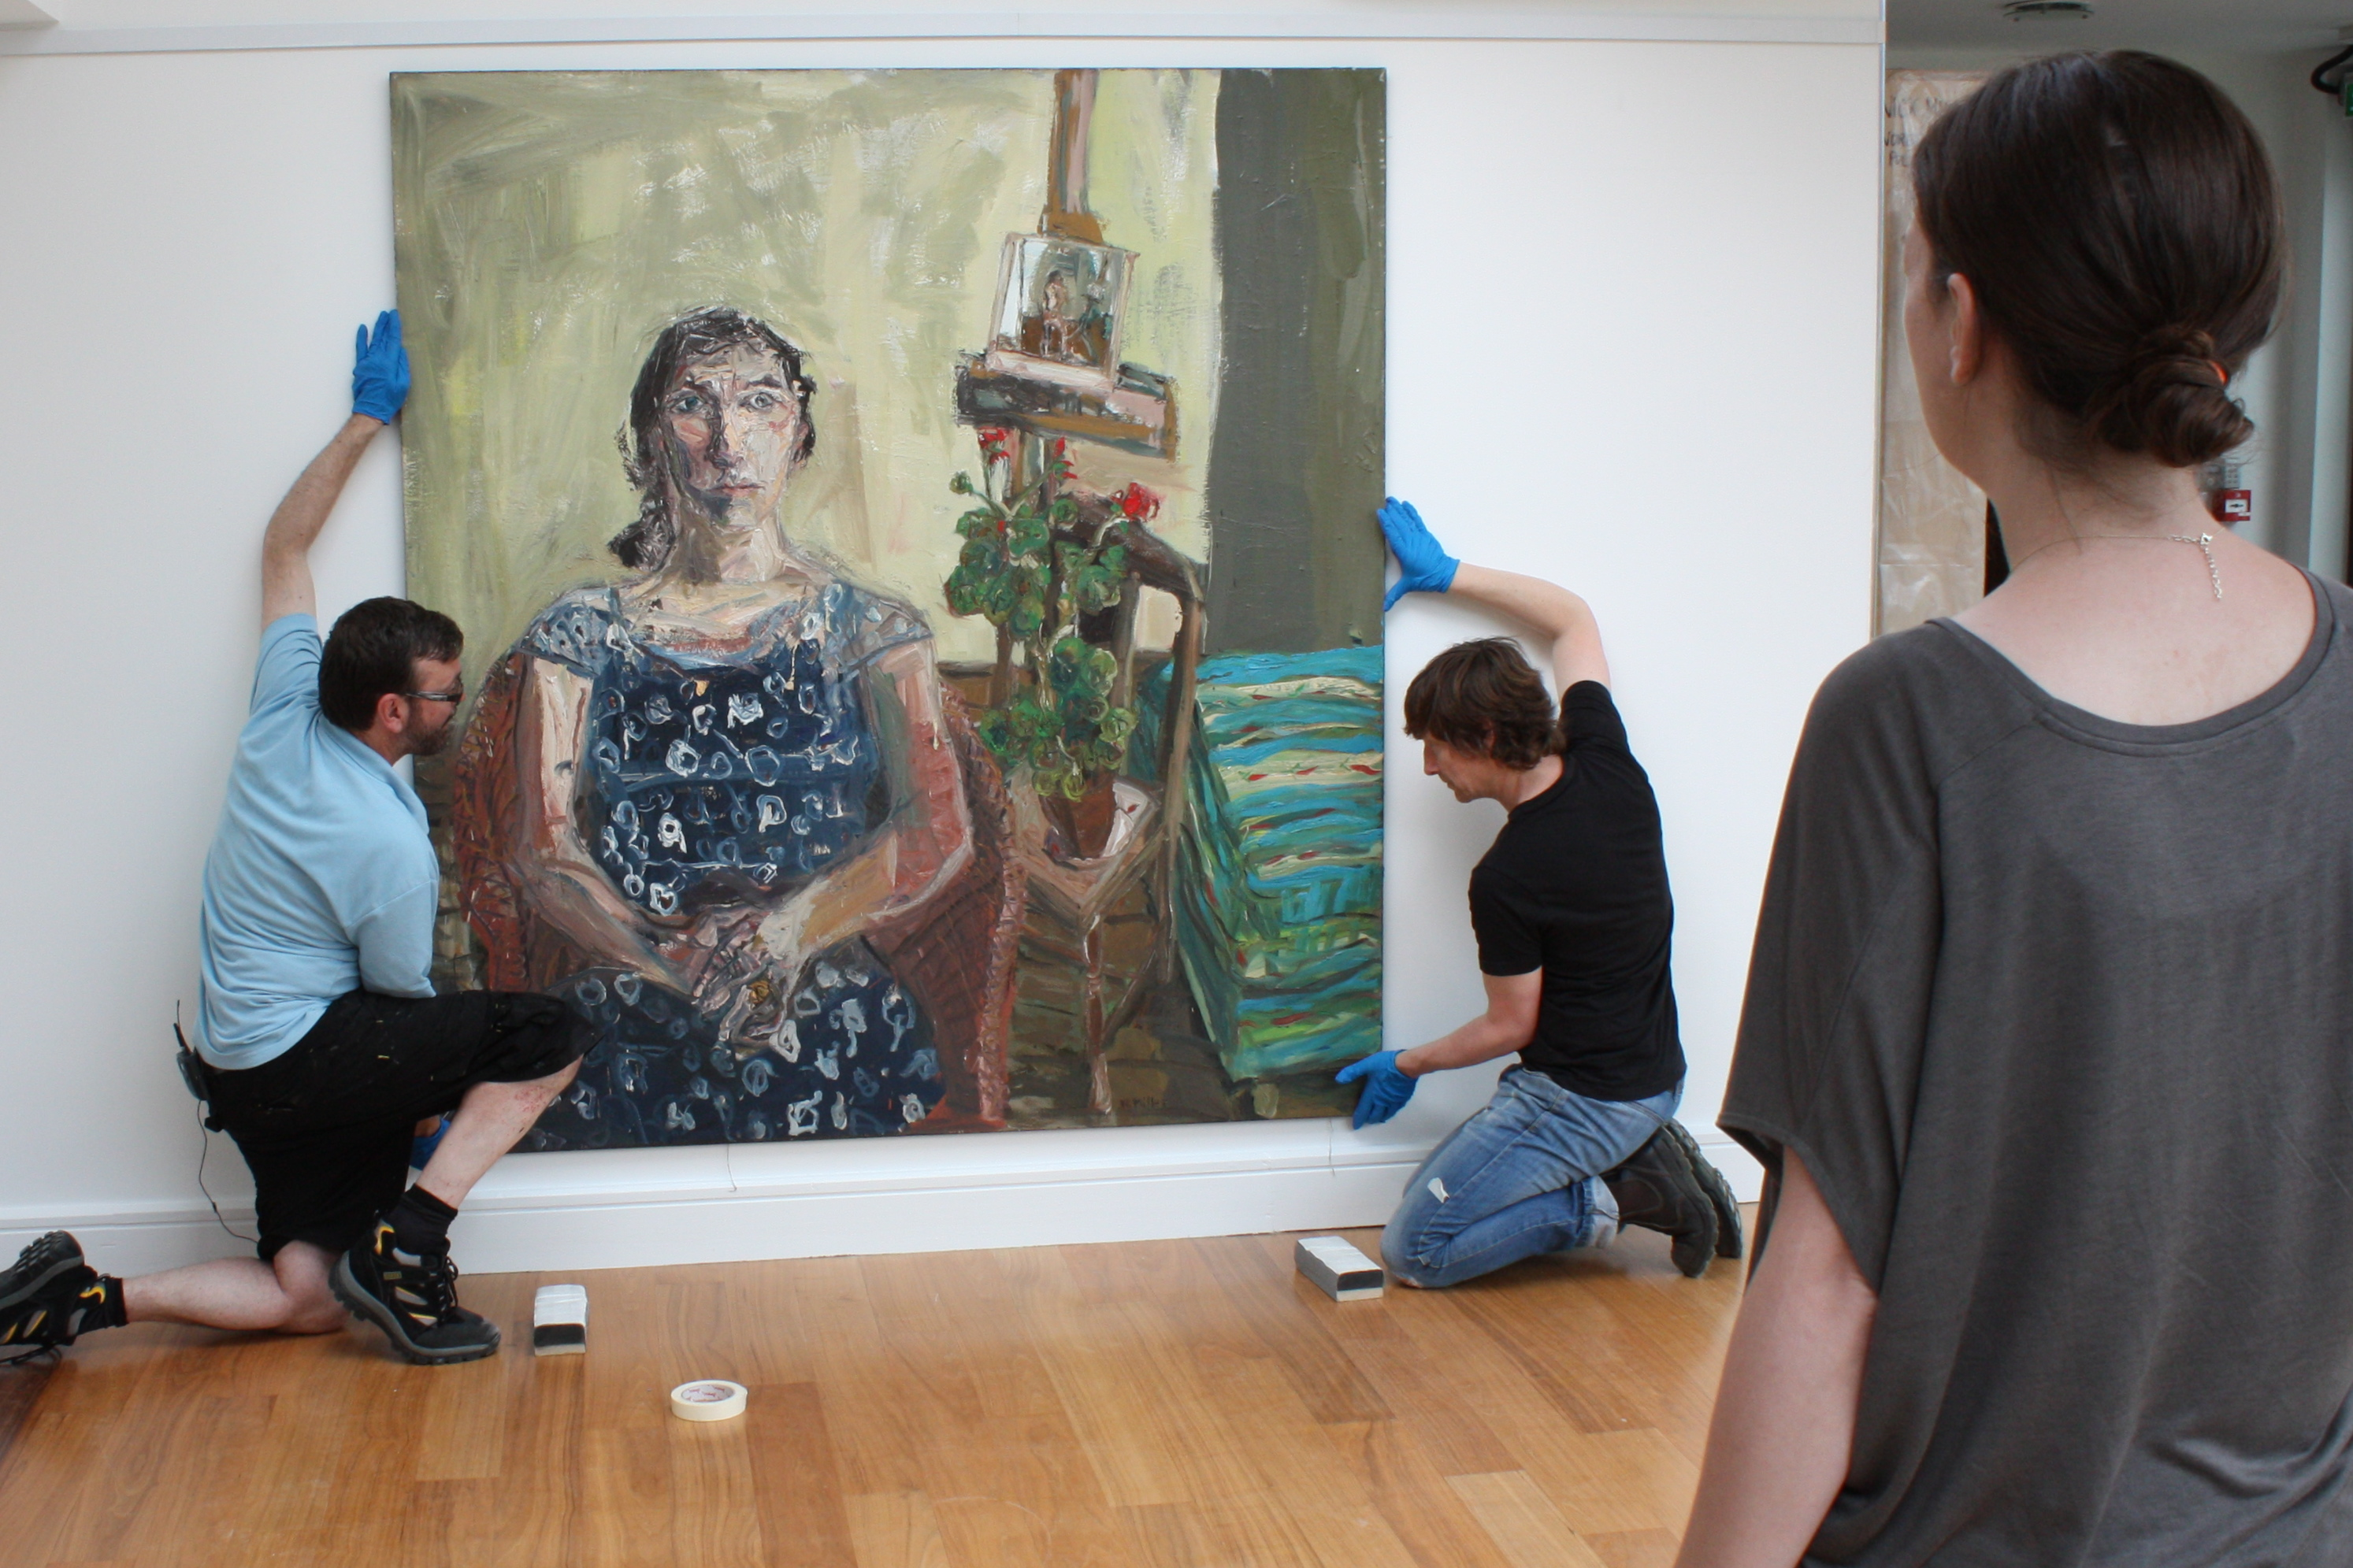 Installing Noreen 1, Nick Miller Arthouse 2014 Image Lisa Fingleton